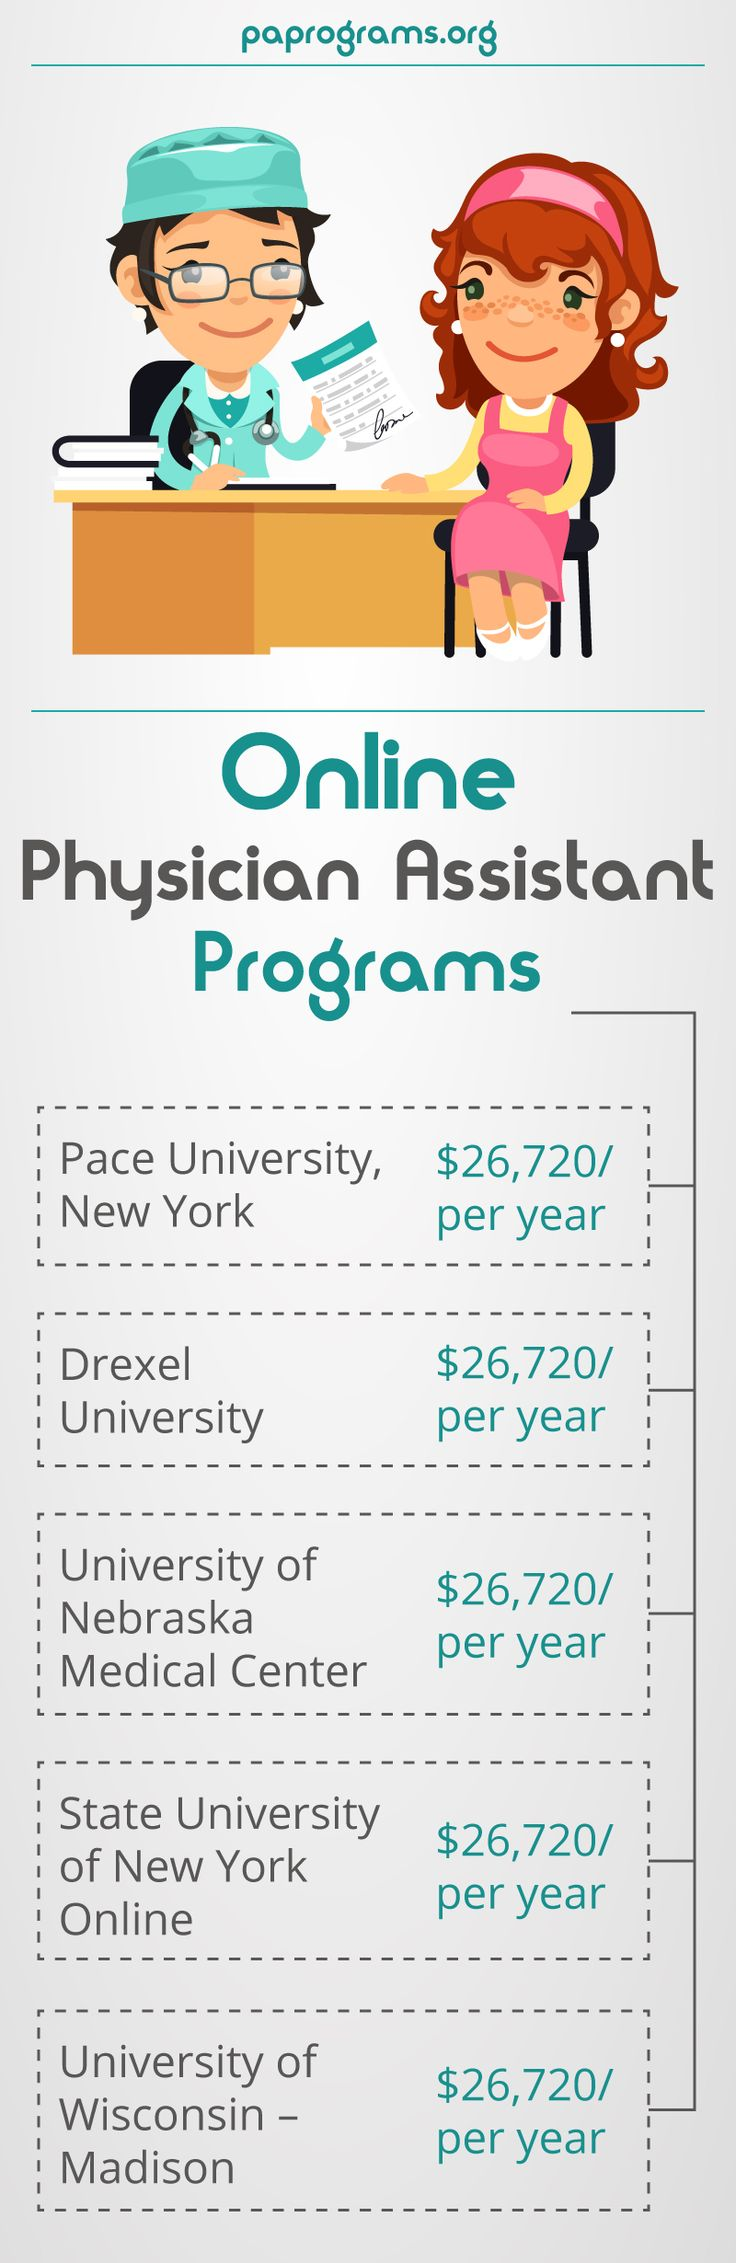 Best 25 online physician assistant programs ideas on pinterest online physician assistant programs pa schoolphysician assistant mitanshu Gallery